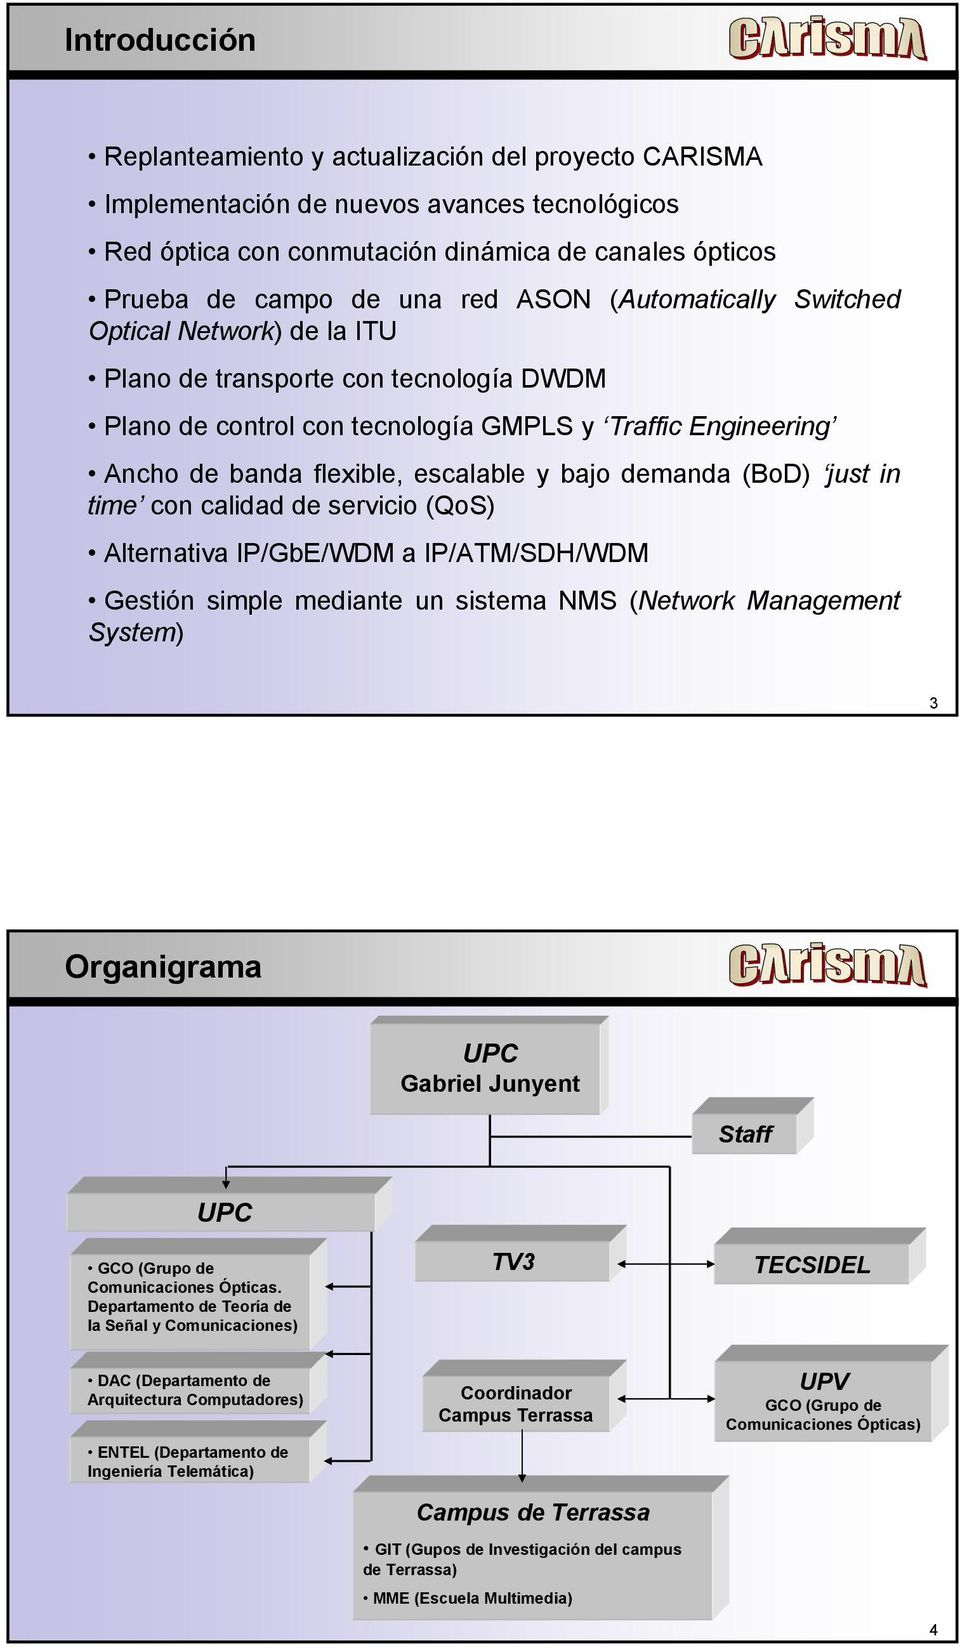 demanda (BoD) just in time con calidad de servicio (QoS) Alternativa IP/GbE/WDM a IP/ATM/SDH/WDM Gestión simple mediante un sistema NMS (Network Management System) 3 Organigrama UPC Gabriel Junyent